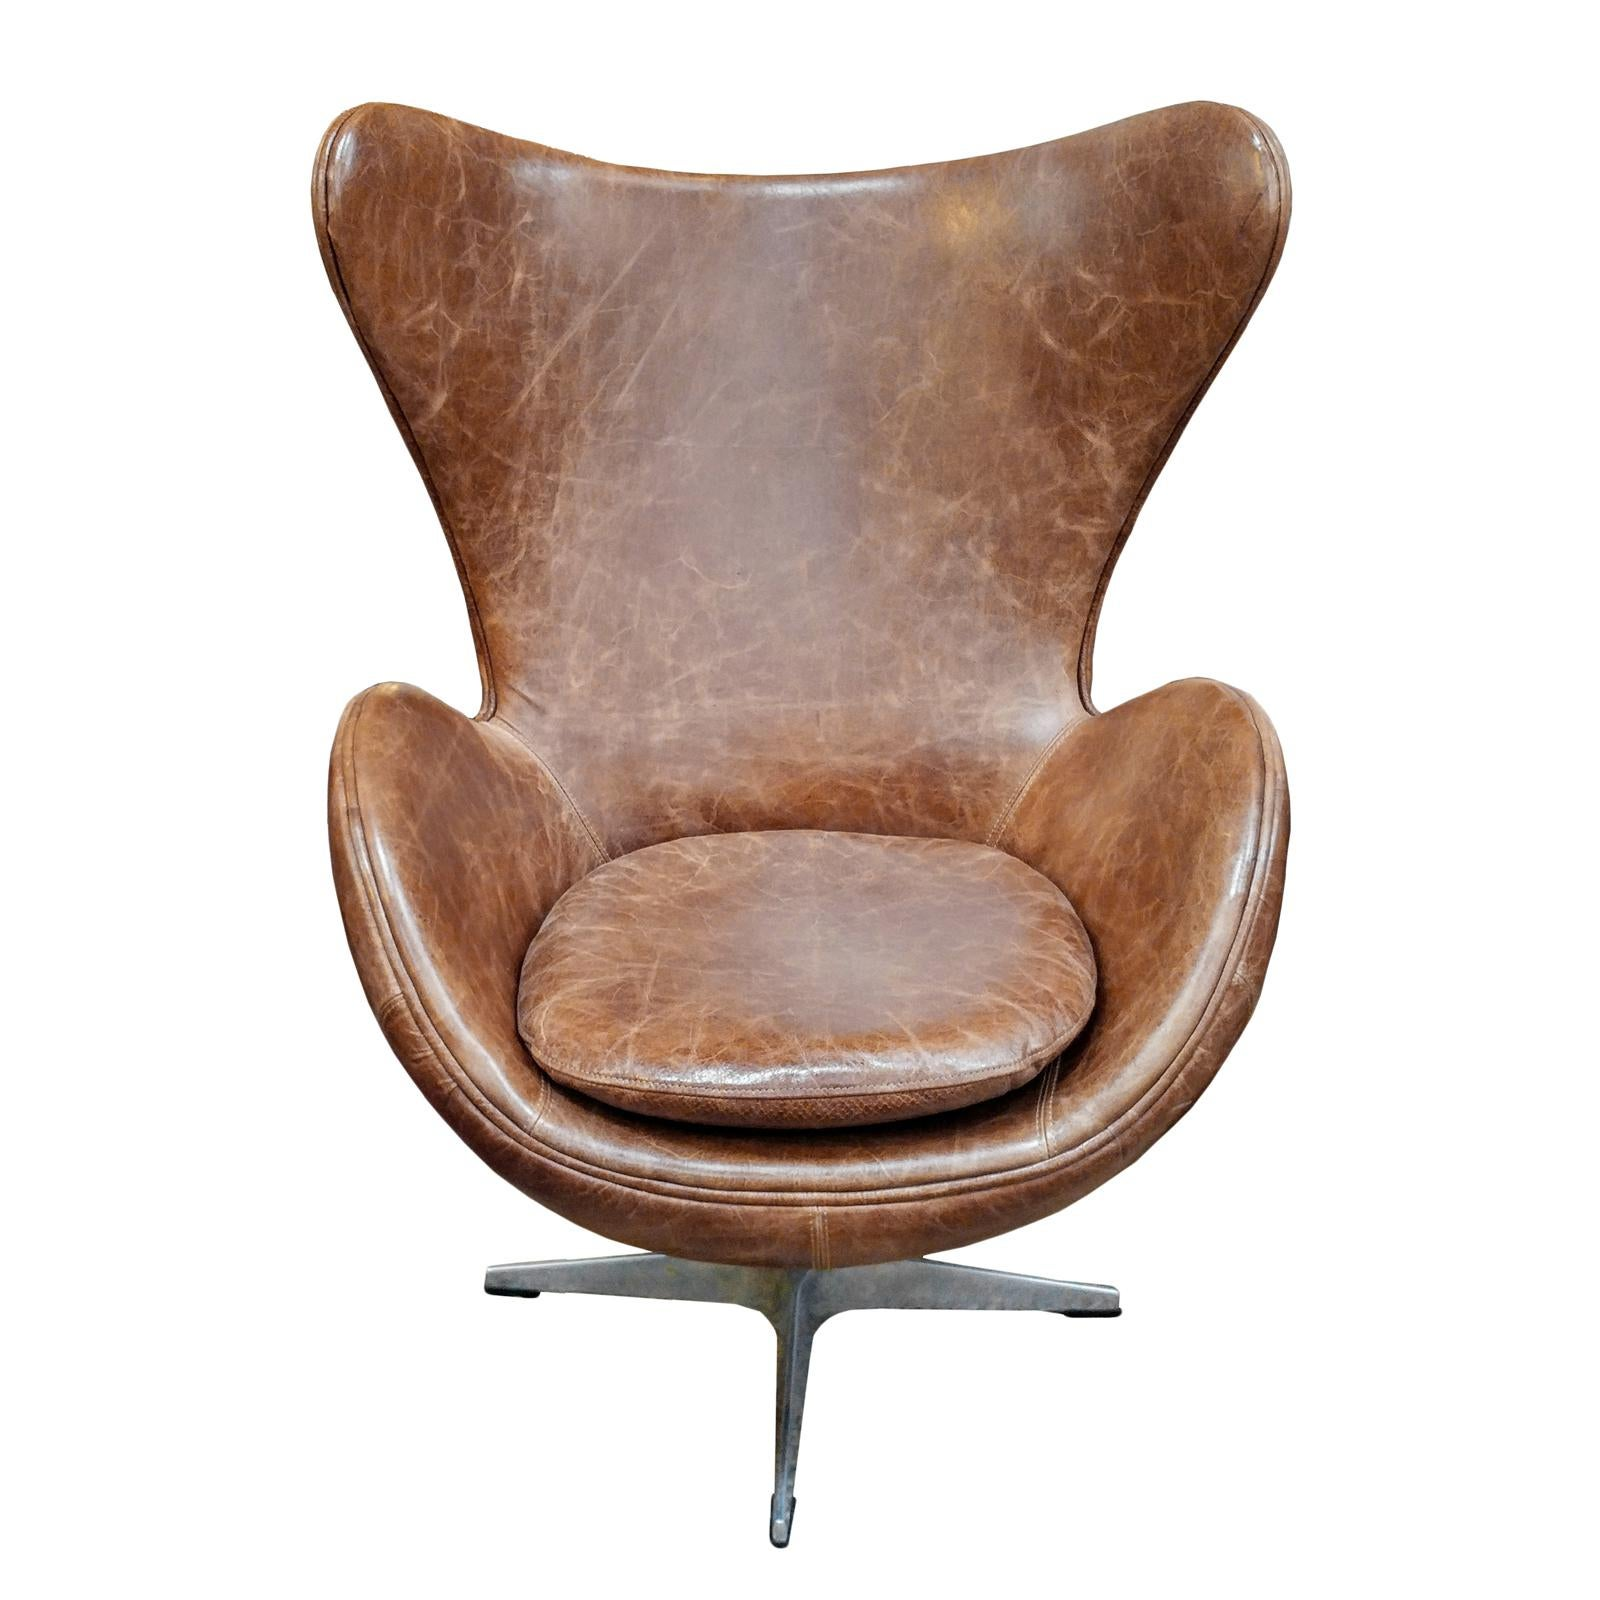 Merveilleux Brown Aged Leather Wingback Chair For Sale   Image 8 Of 8